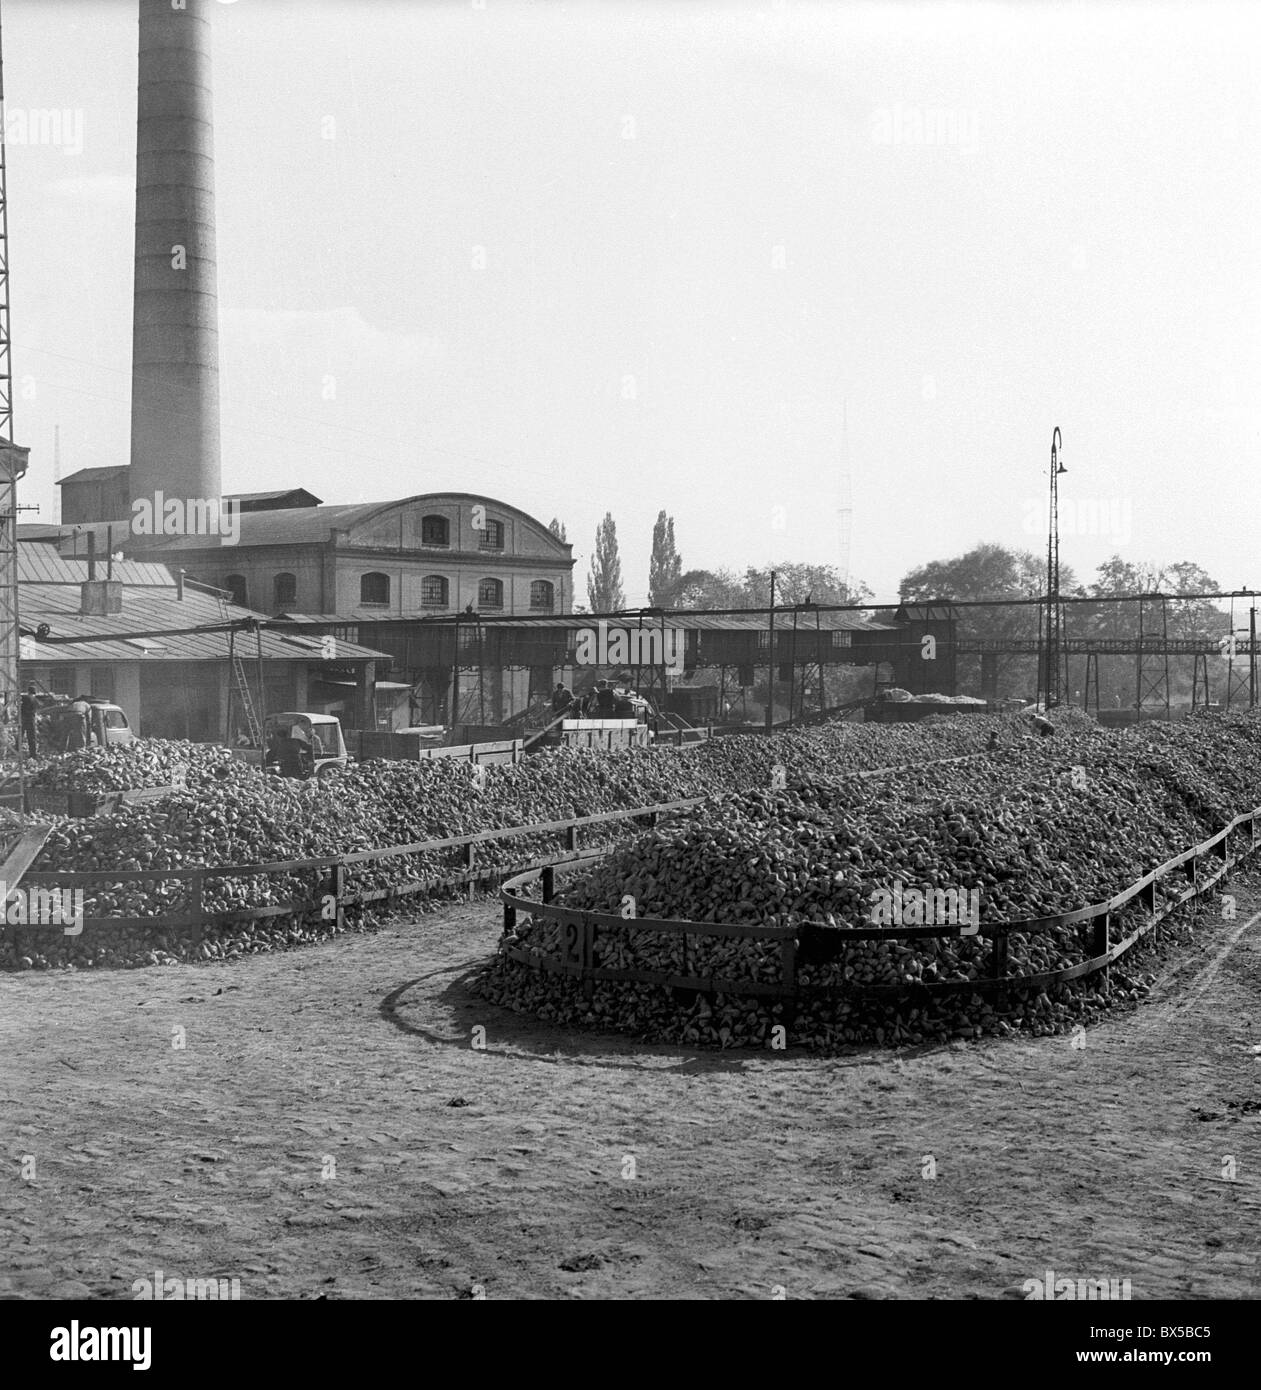 Metric tons of sugarbeets are piled up at sugar refinery in Cesky brod, Czechoslovkai 1959. (CTK Poto / Jiri Finda) - Stock Image